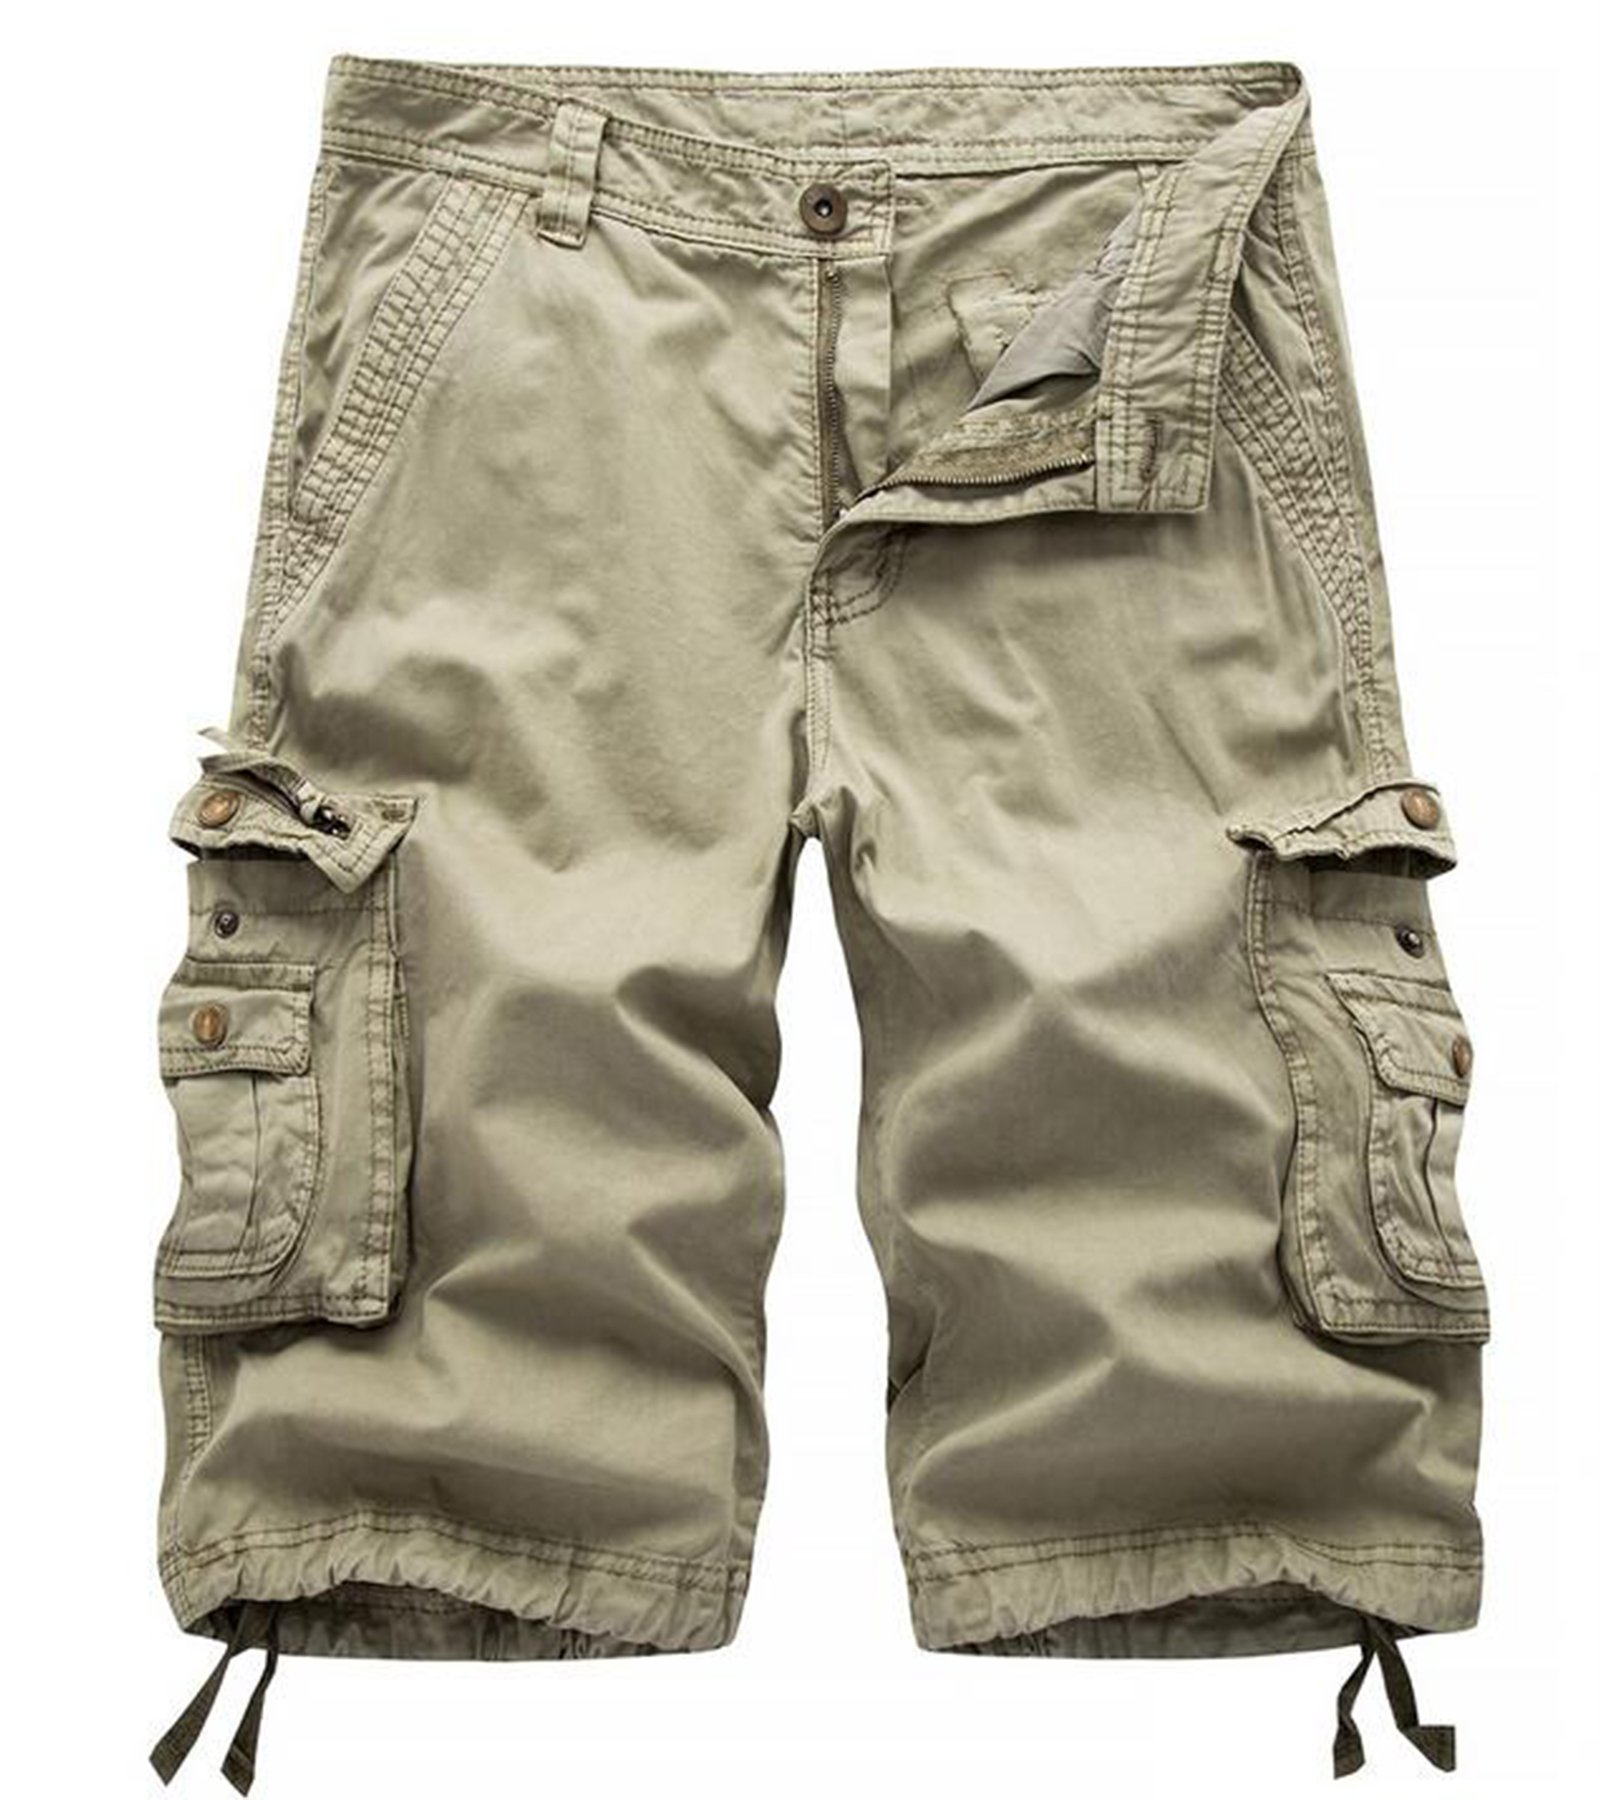 AOYOG Mens Solid MultiPocket Cargo Shorts Casual Slim Fit Cotton Solid Camo Shorts, Khaki 082, Lable size 34(US 32)